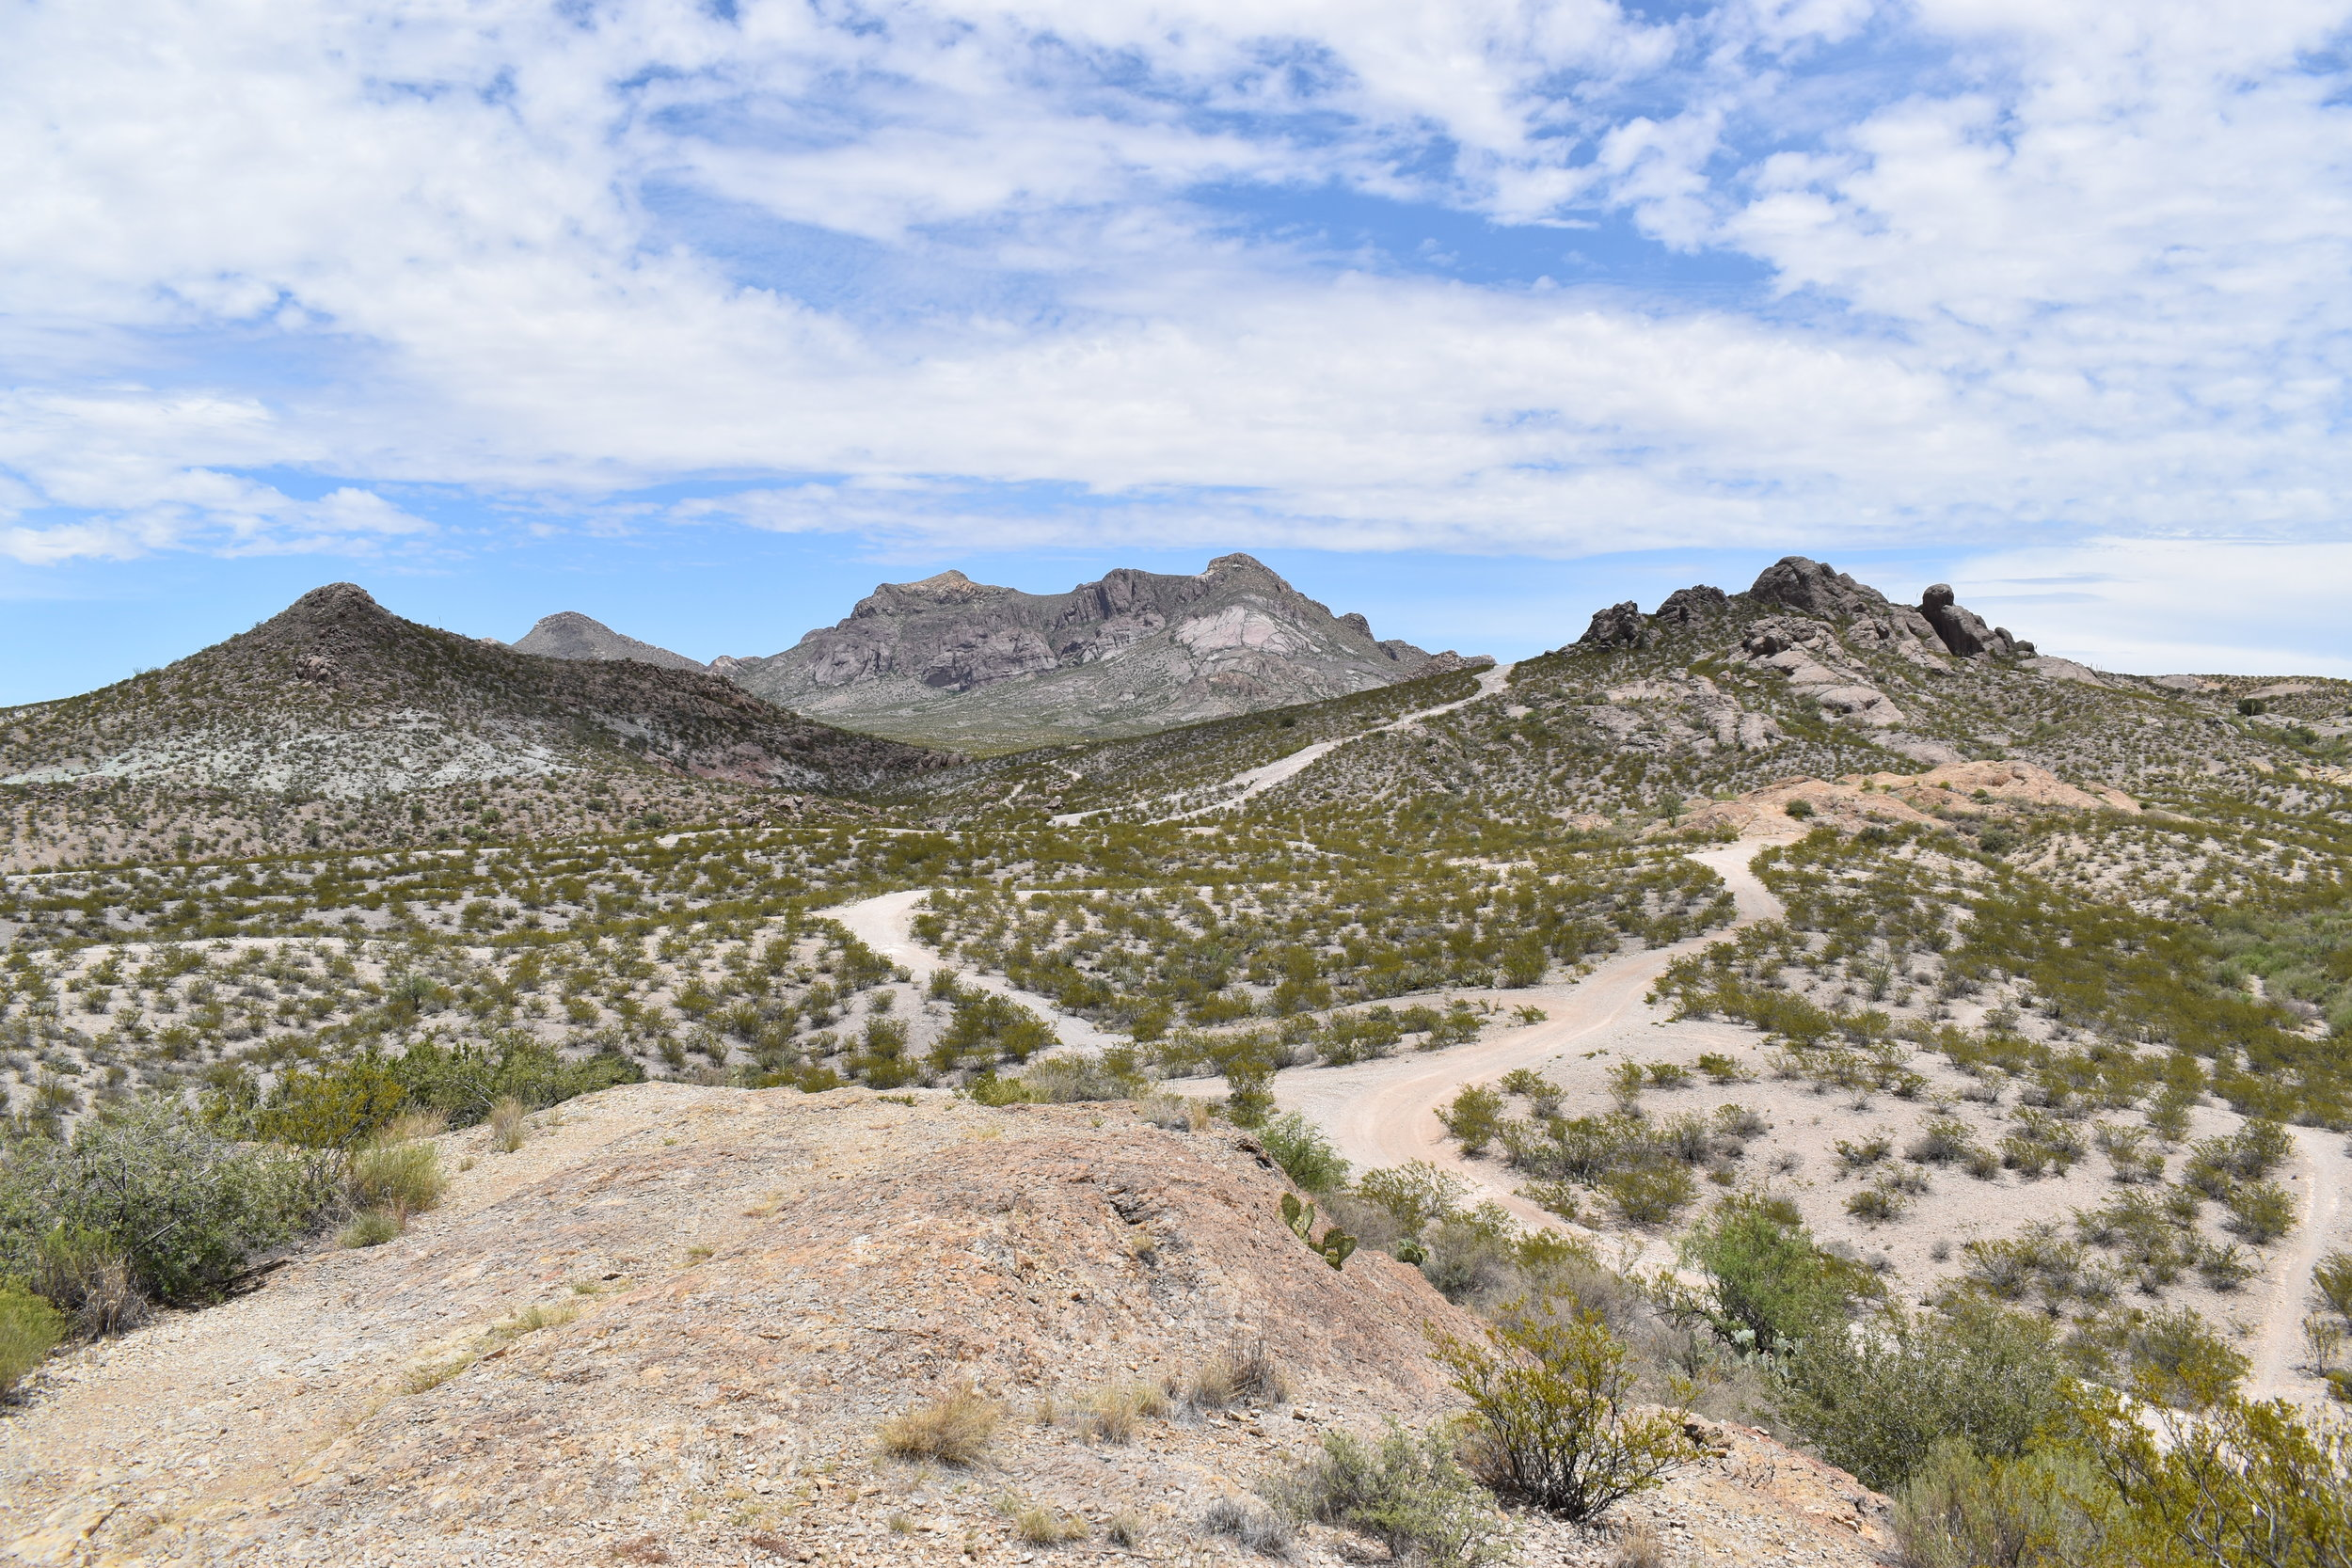 The Doña Ana Mountains